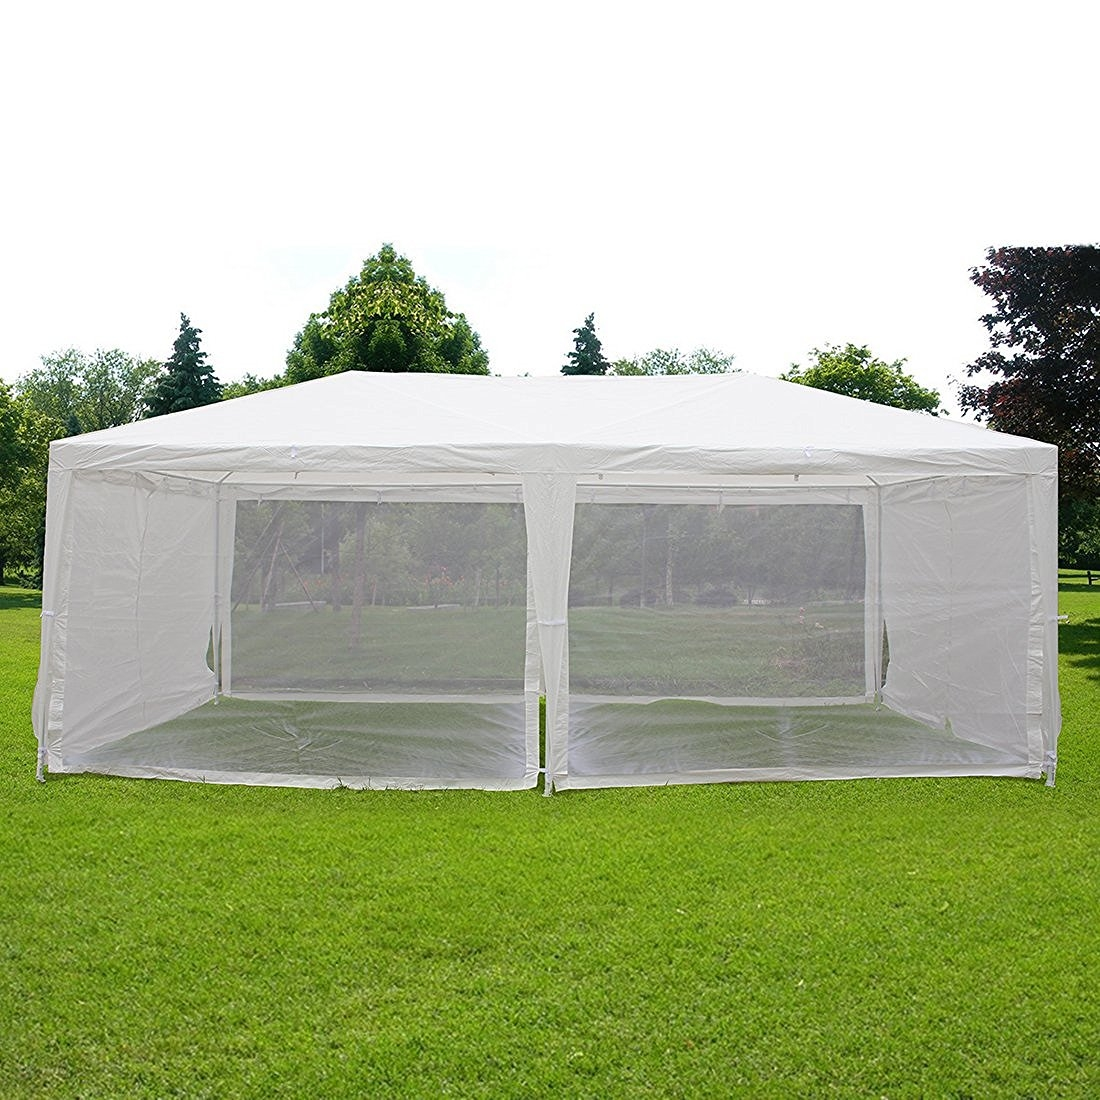 quictent outdoor canopy gazebo party wedding tent screen house sun shade shelter with fully enclosed mesh side wall 10x20 white